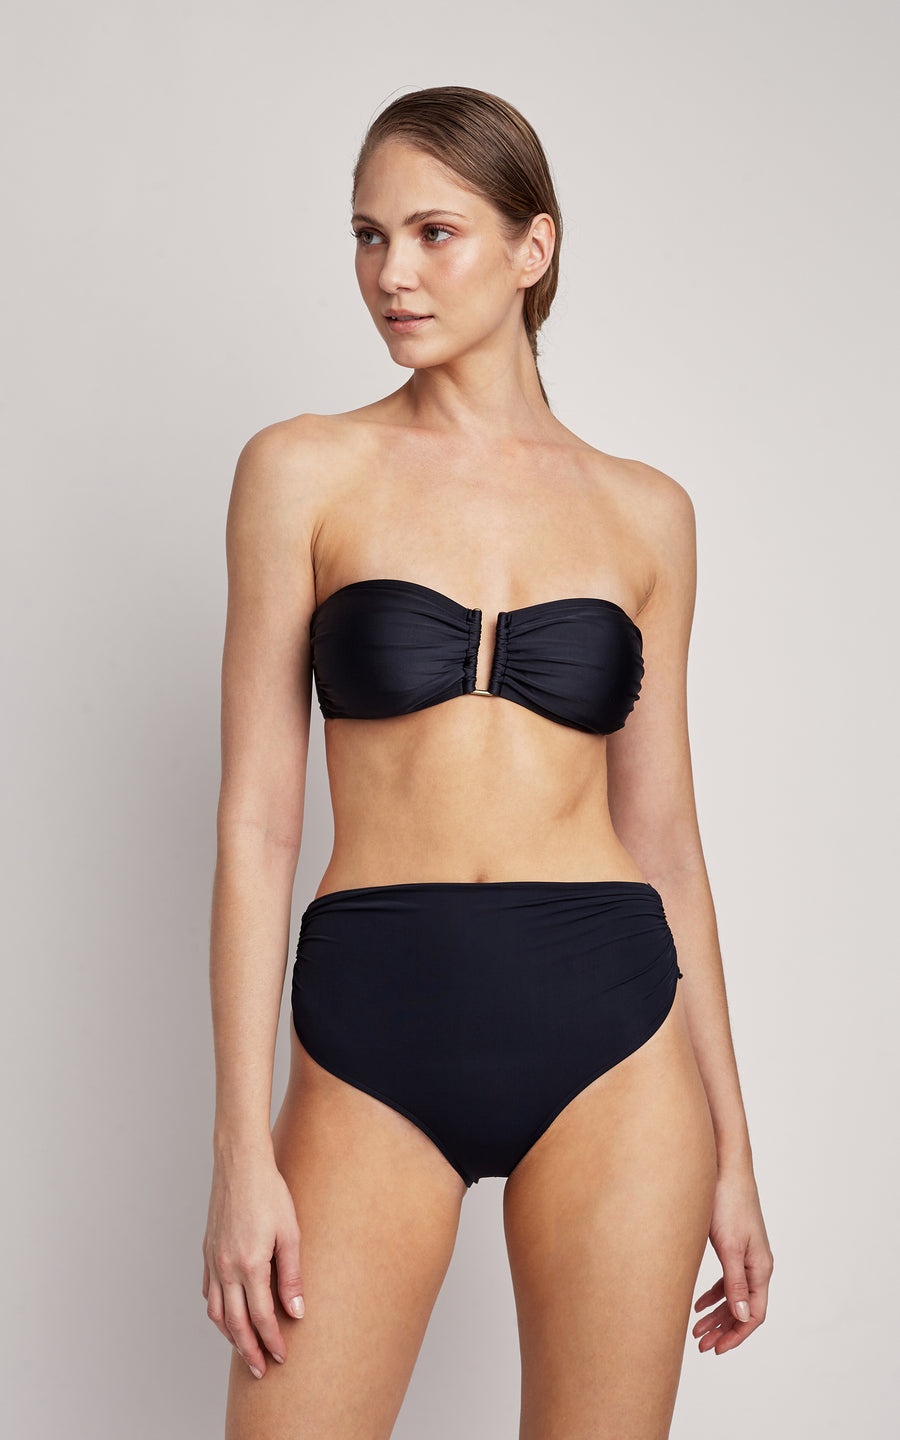 Black Top drop Bandeau and High Waist Bottom